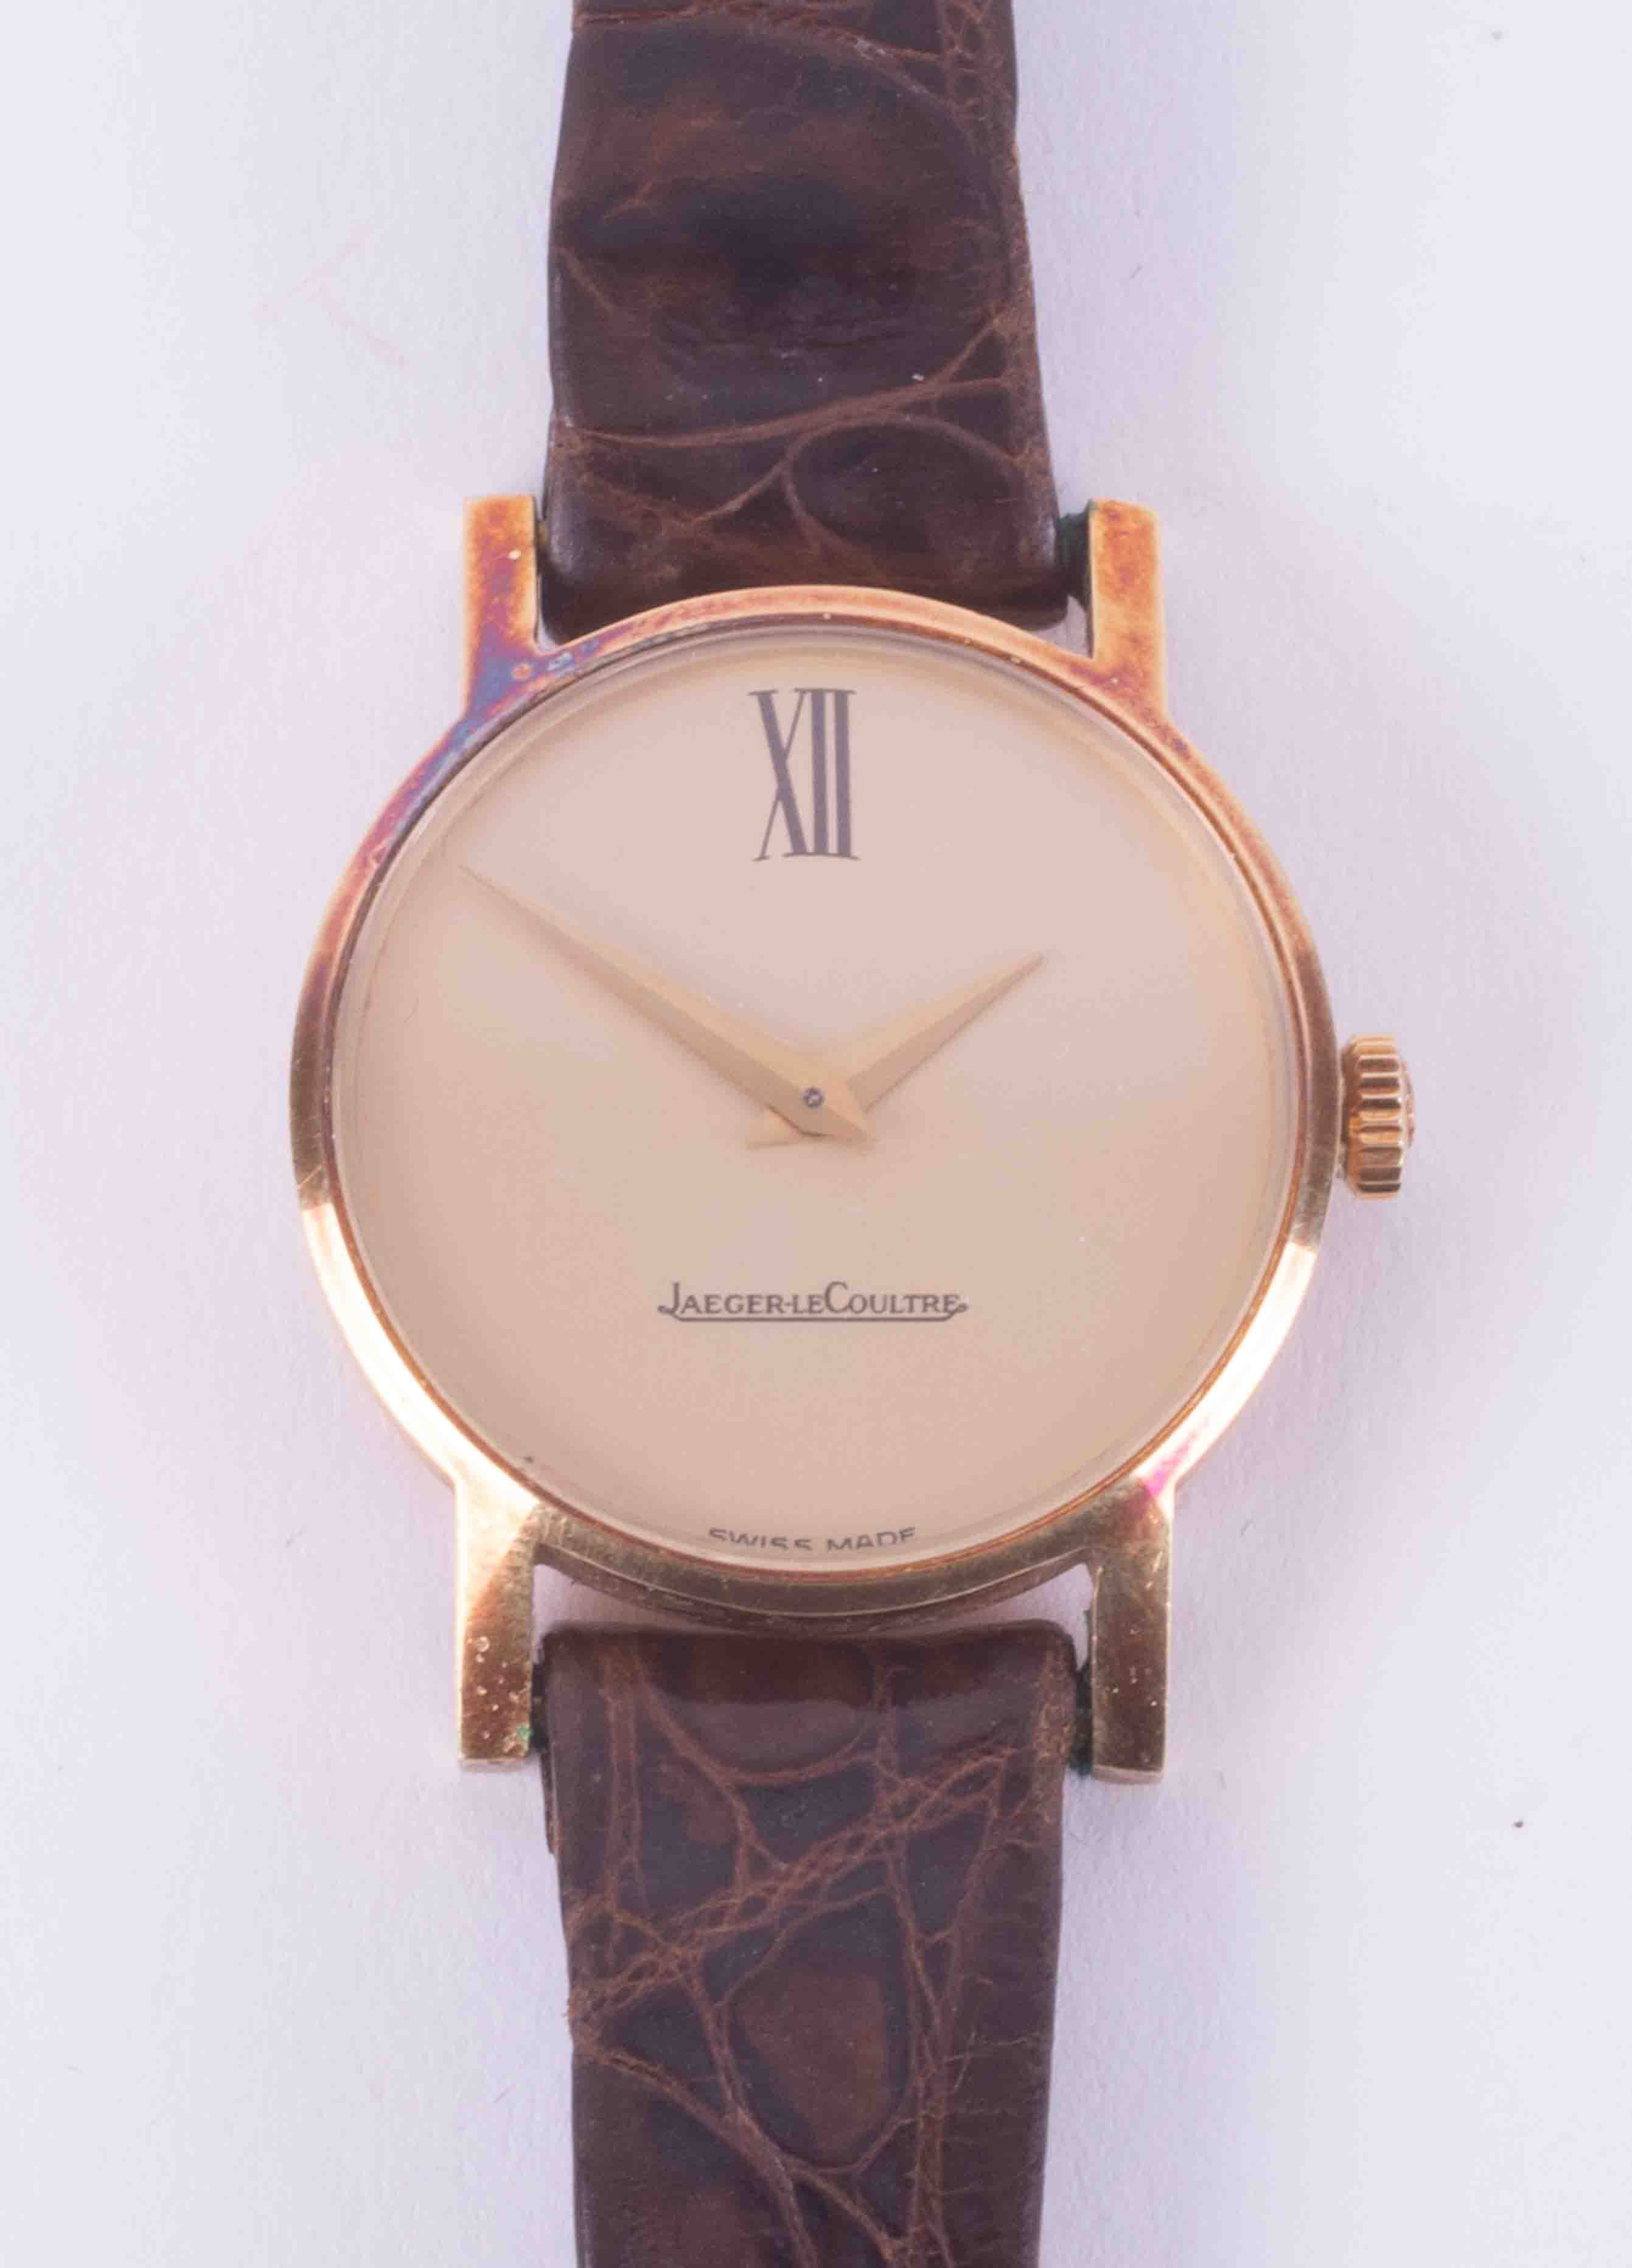 Jaeger-Le-Coultre, an 18ct yellow gold ladies manual wind wristwatch, numbers on back